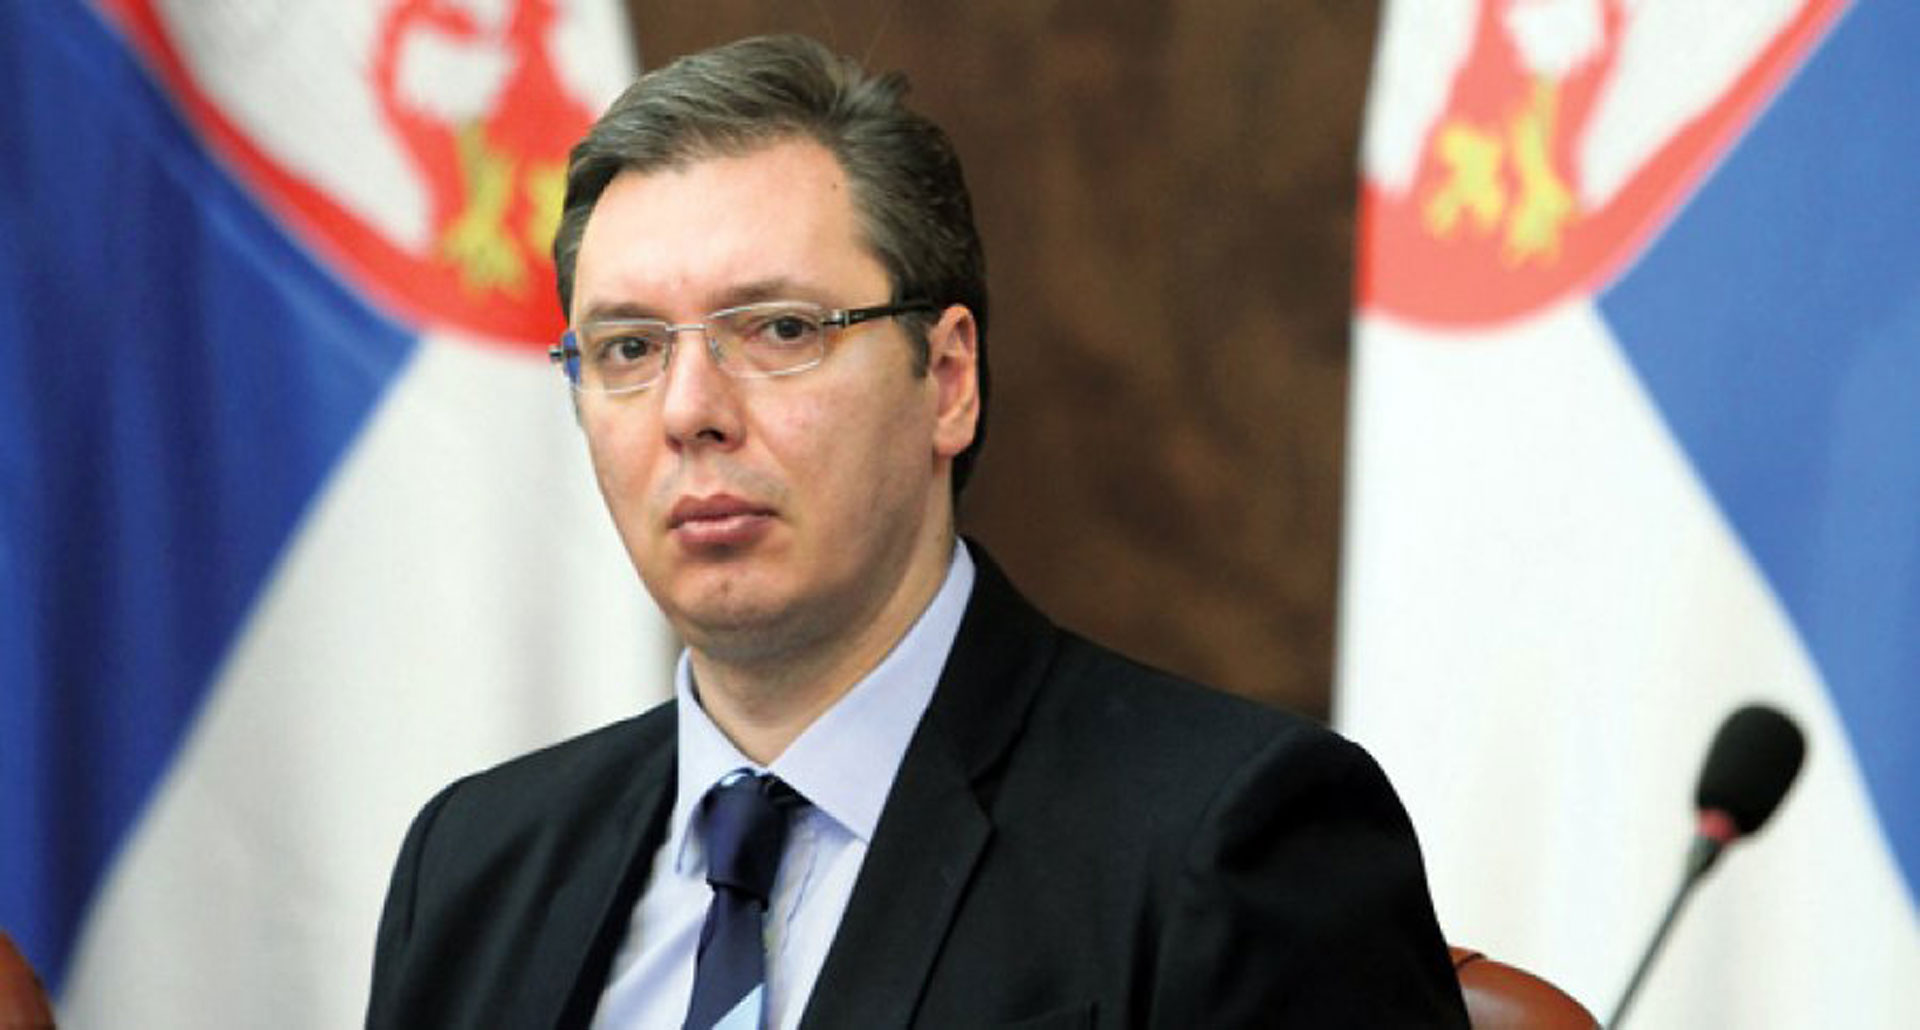 Vučić: EU May Offer UN Seat to Kosovo, EU Membership to Serbia, No Mutual Recognition